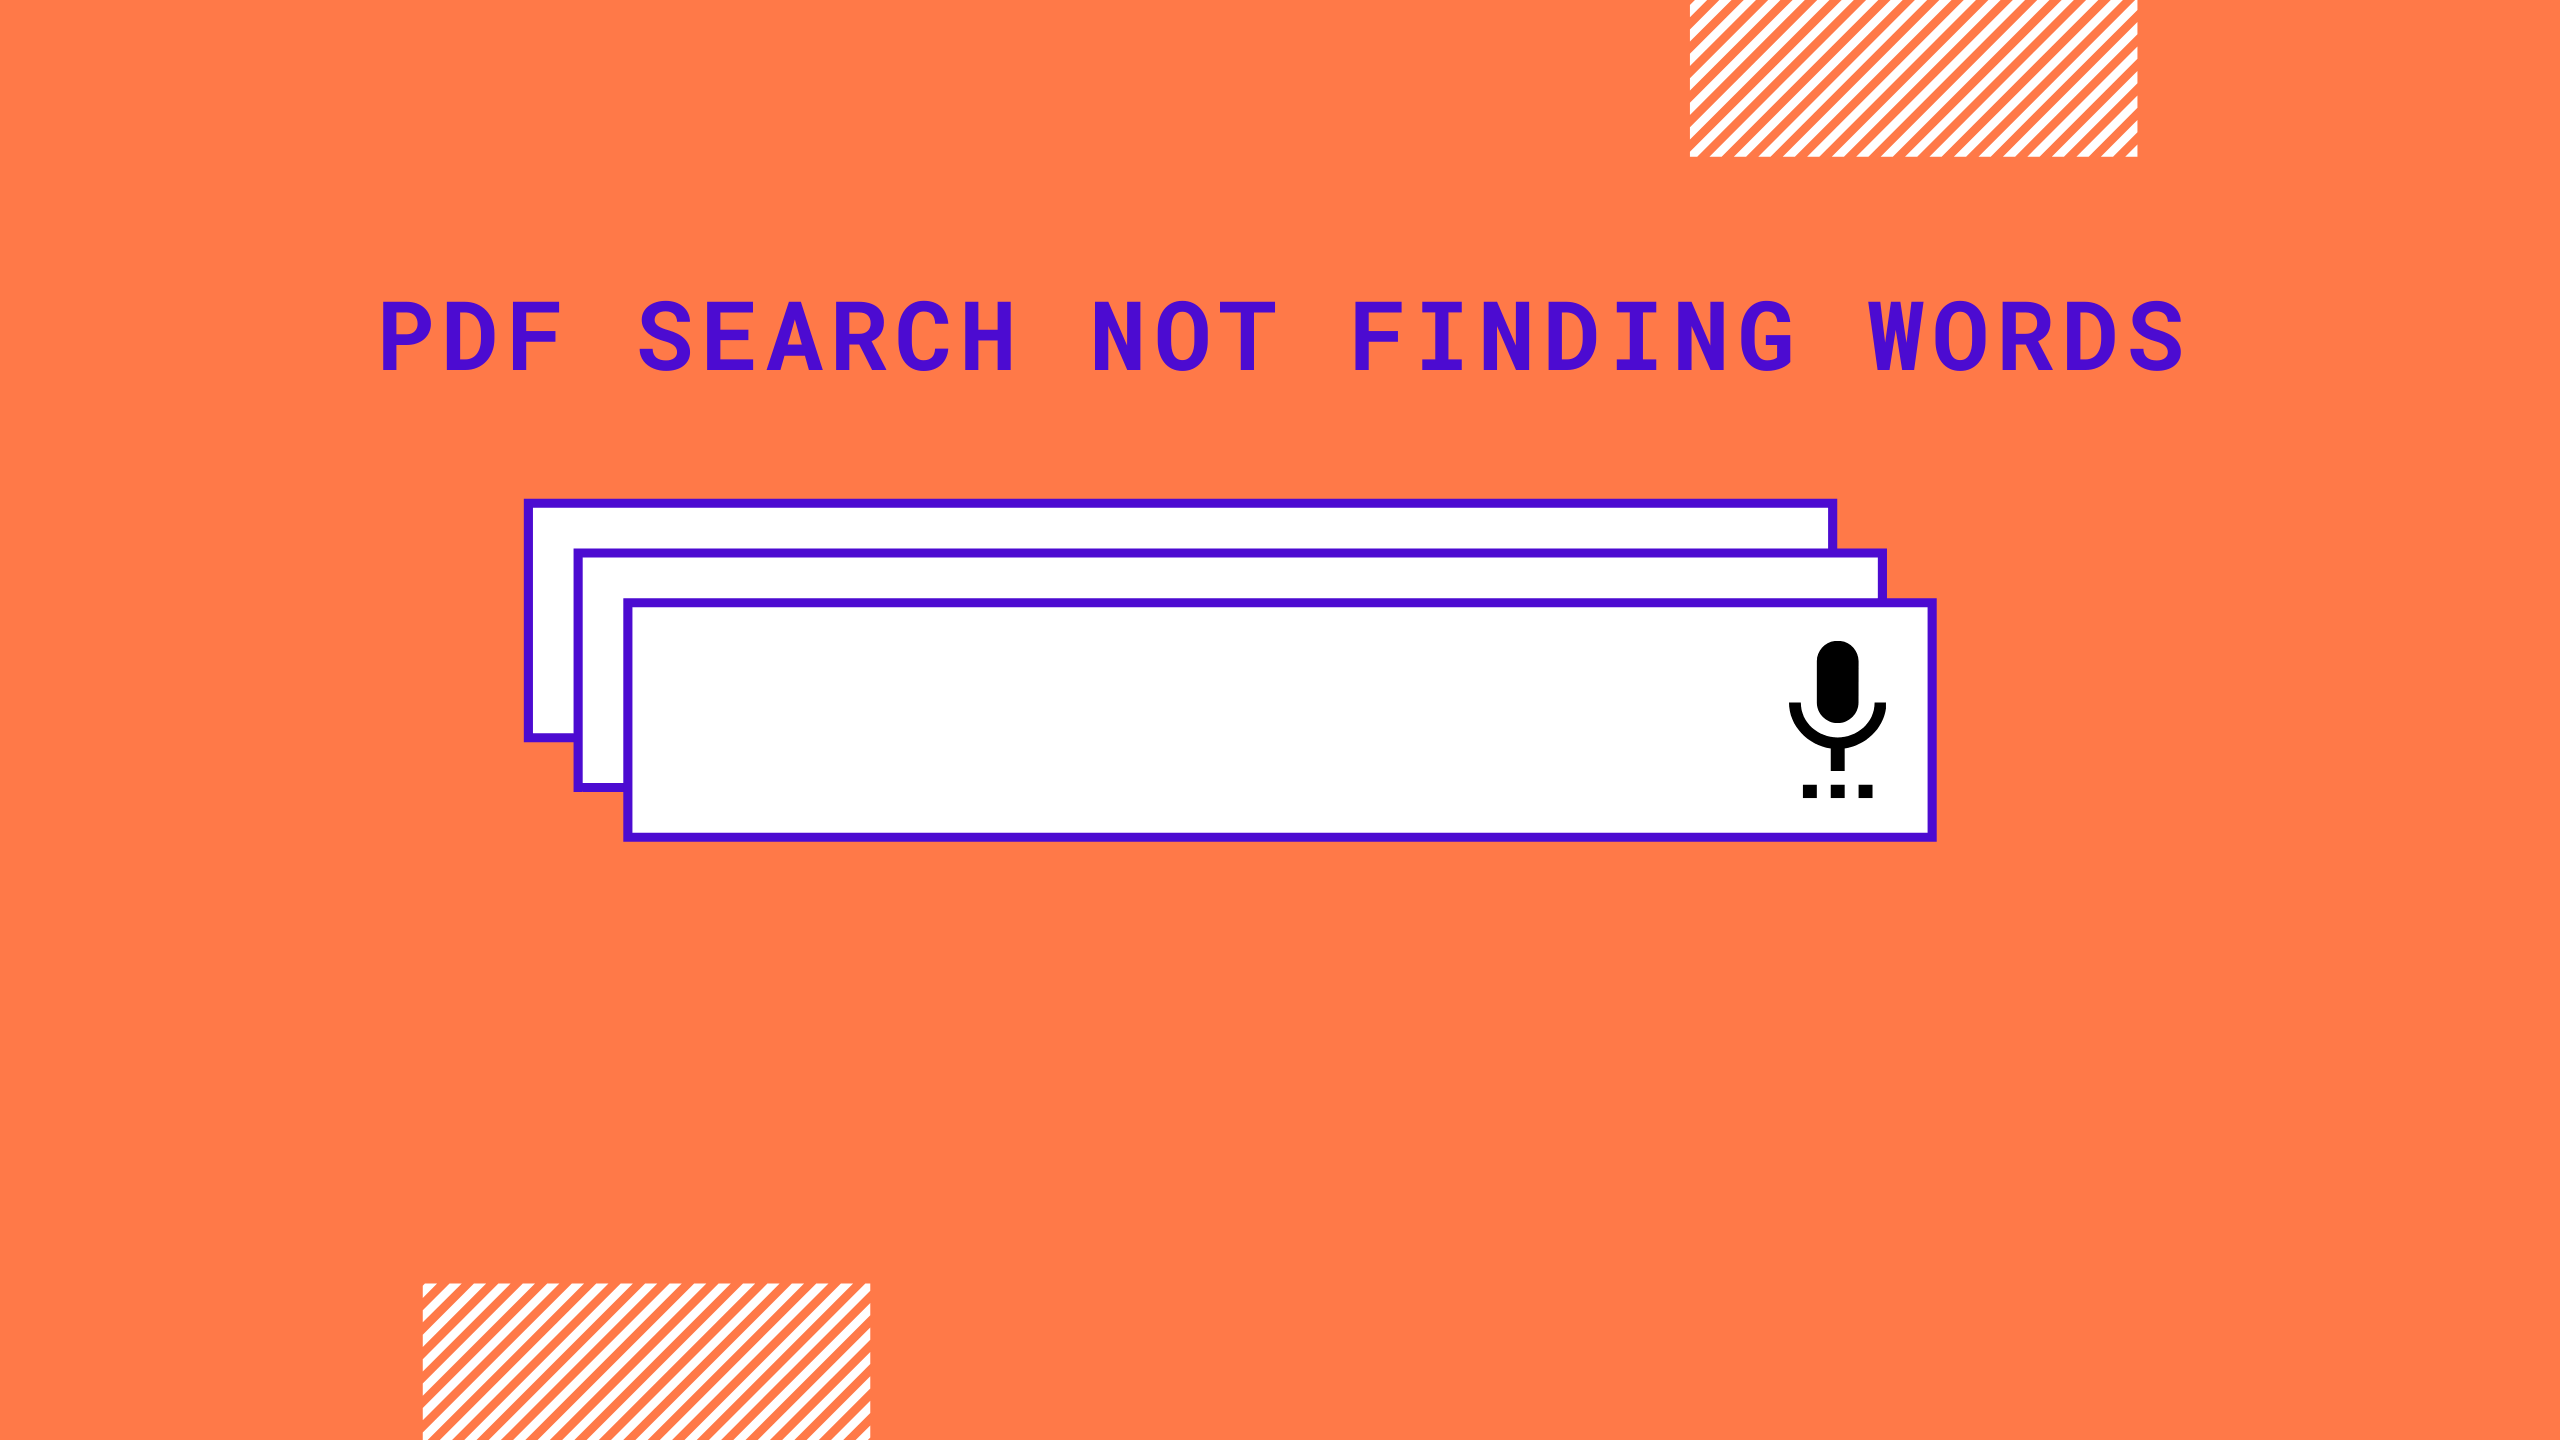 PDF Search Not Finding Words